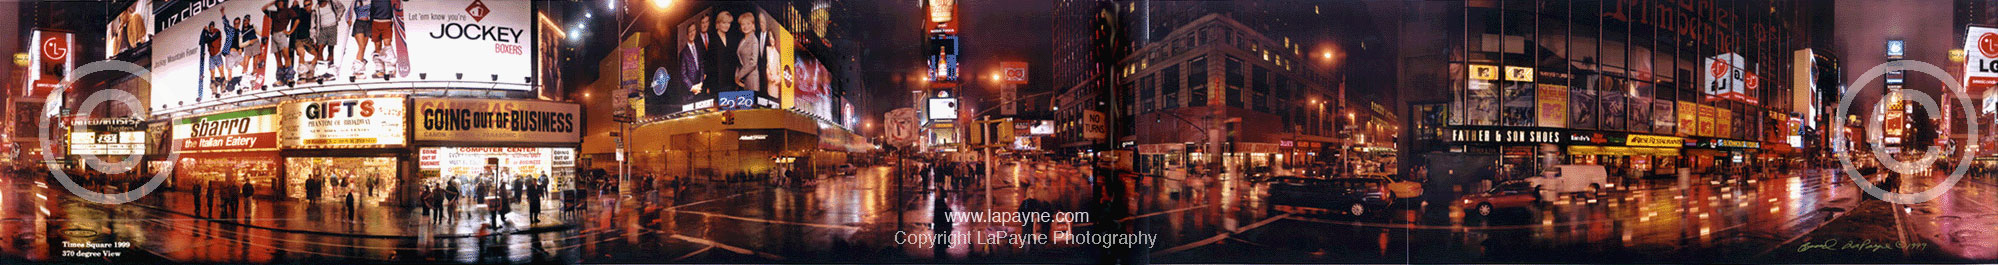 Times Square 370 degree Panorama 1999